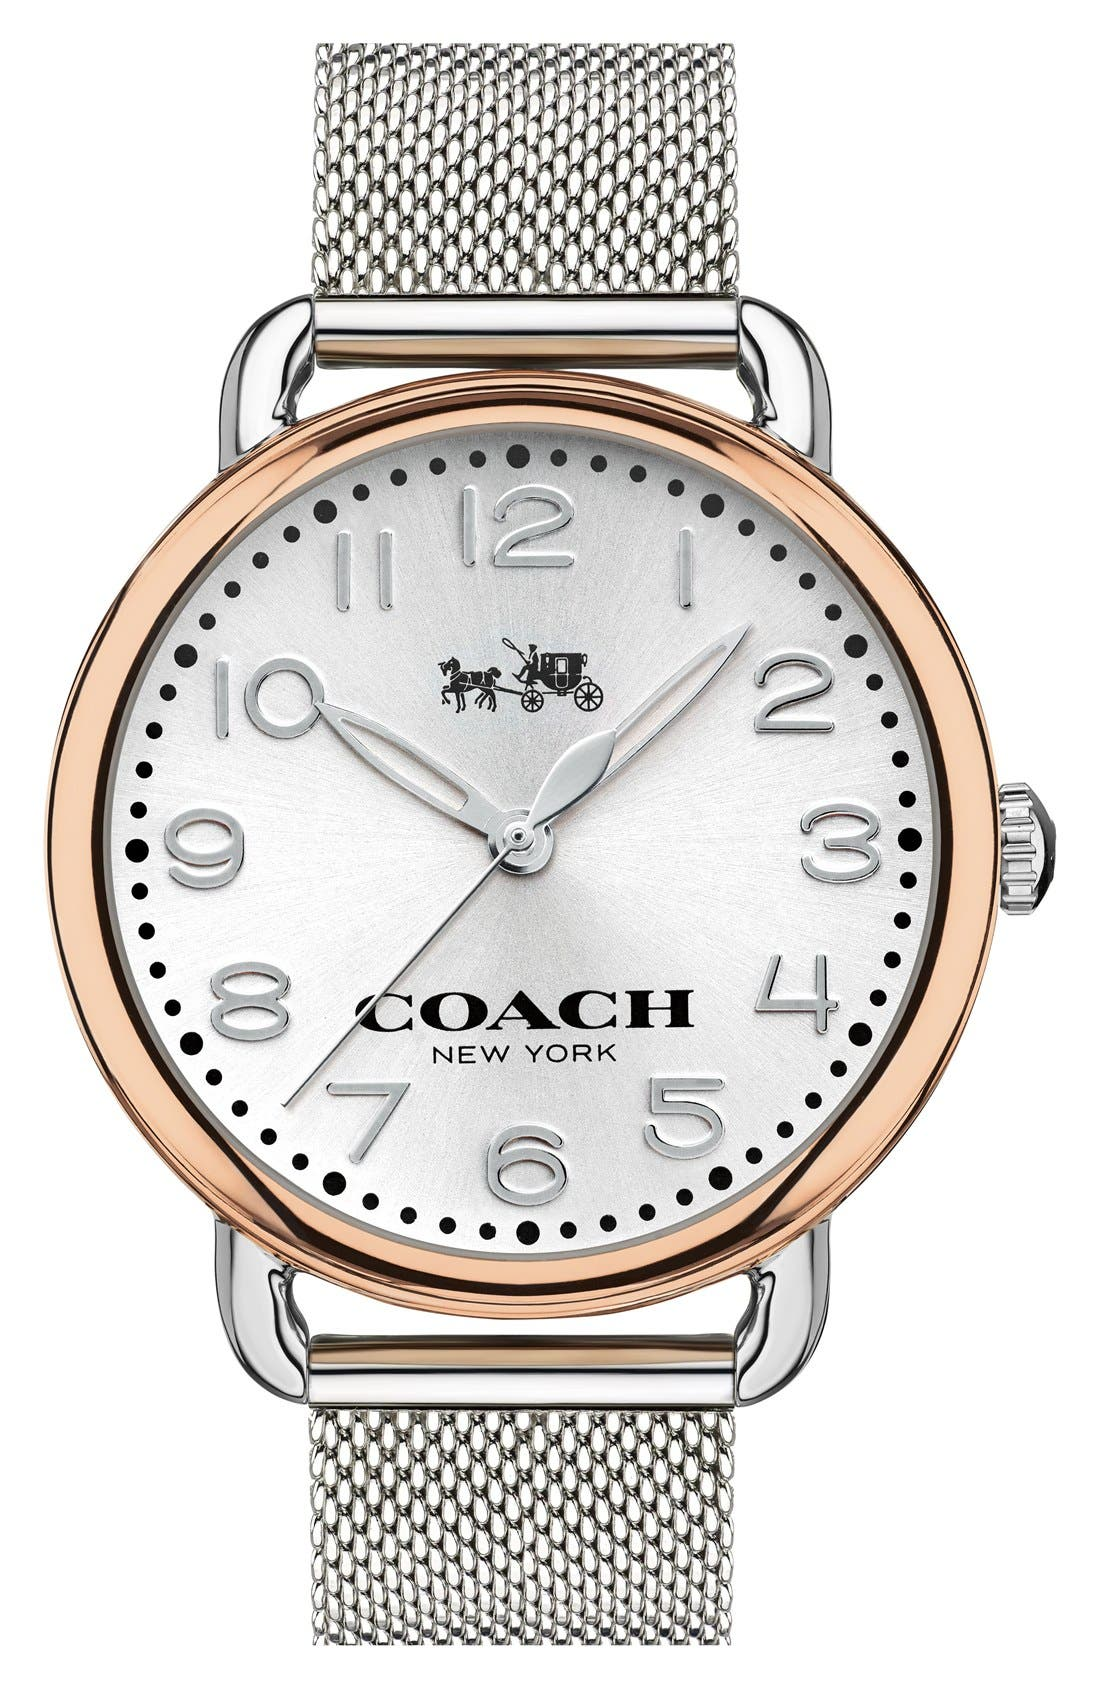 COACH 'Delancey' Round Watch, 36mm